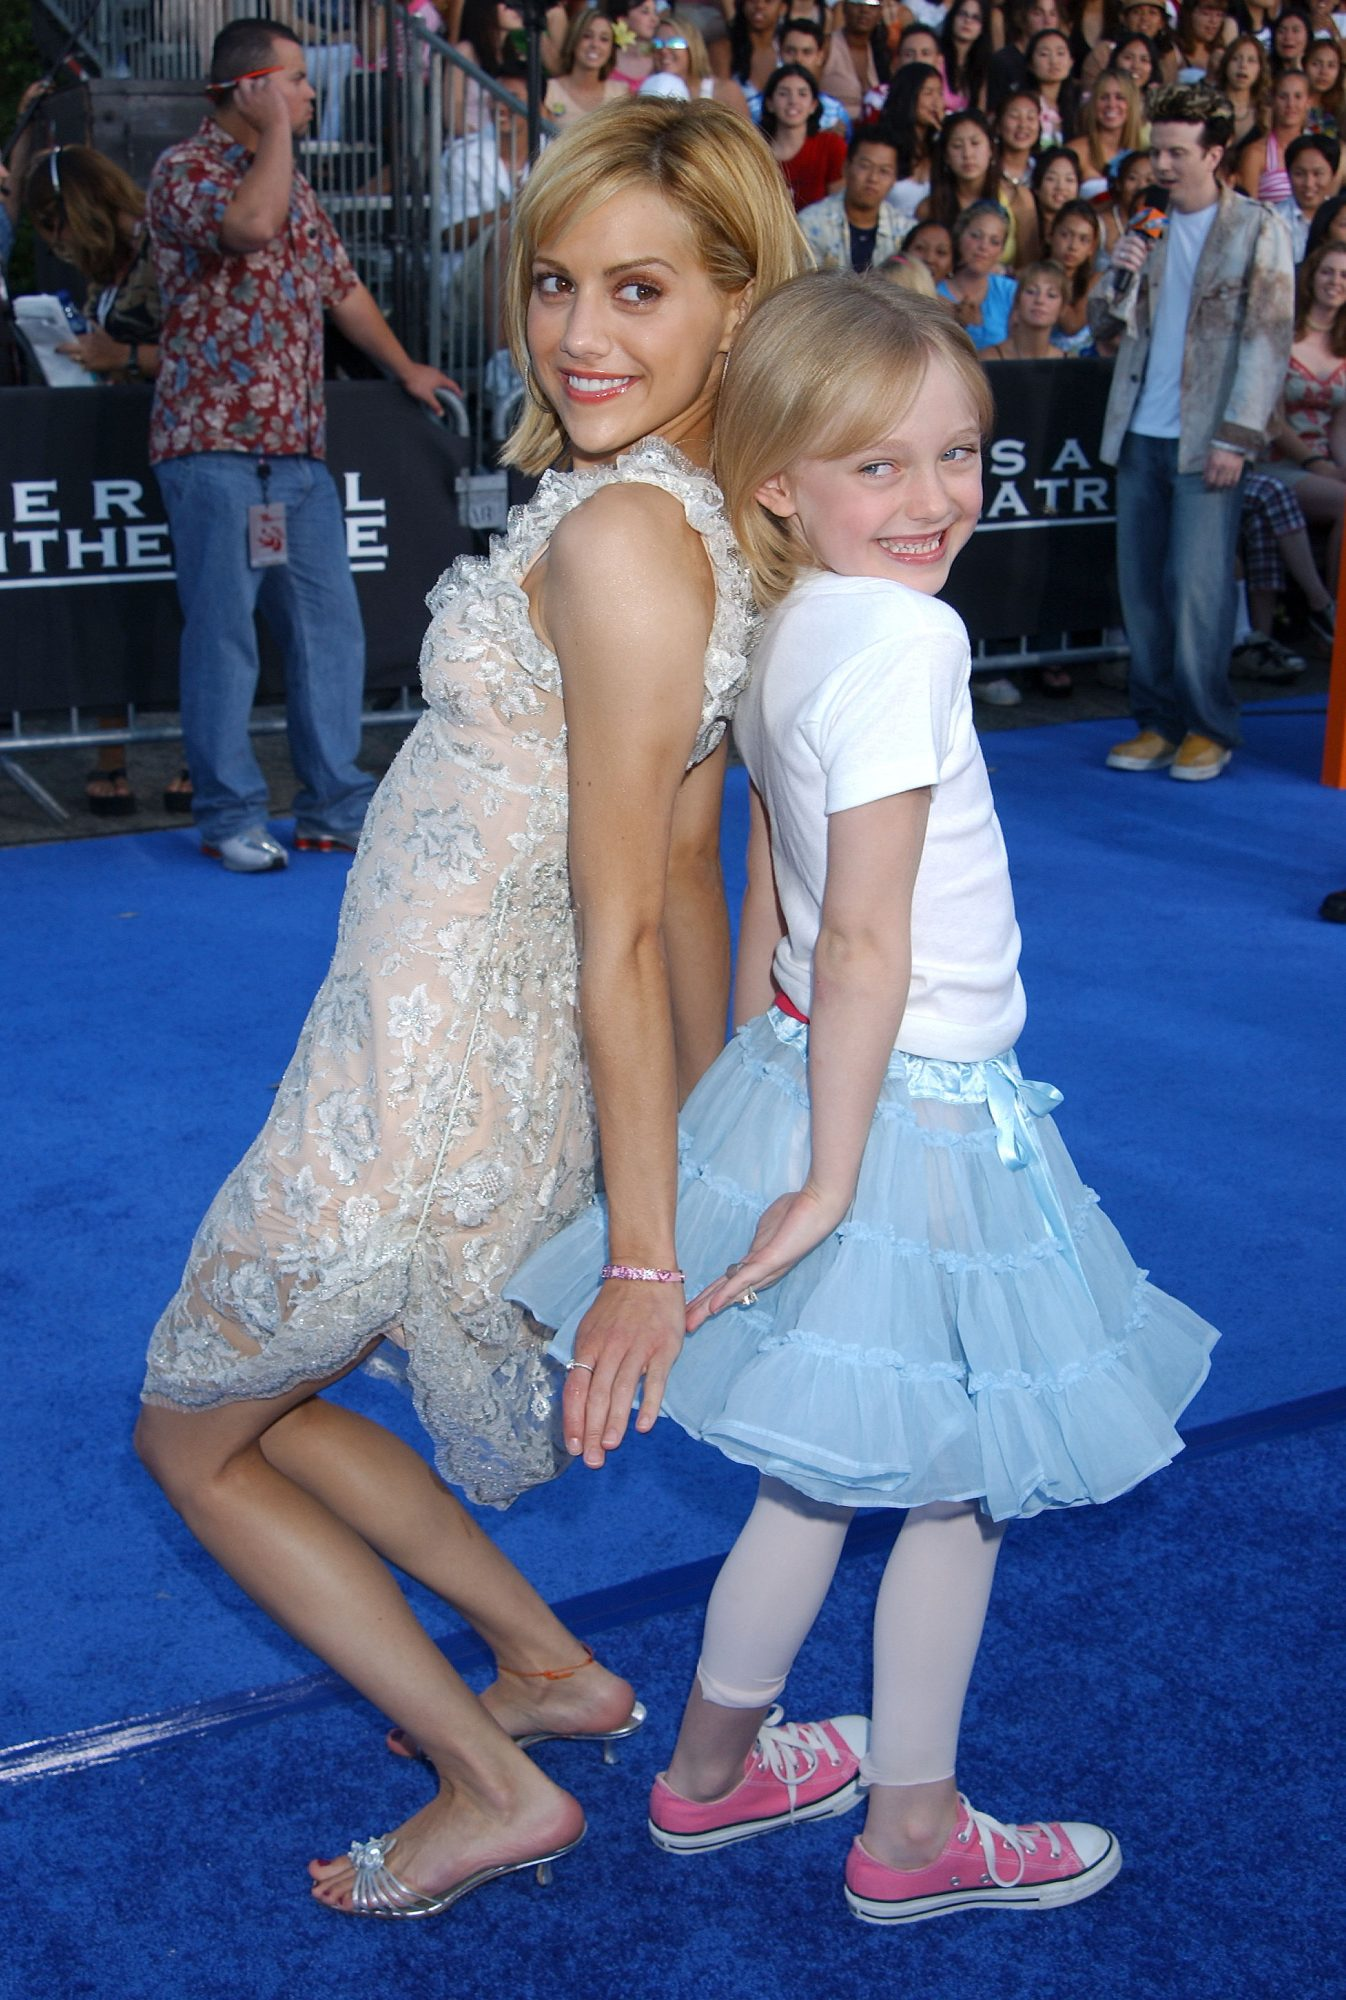 picture-of-brittany-murphy-dakota-fanning-photo.jpg